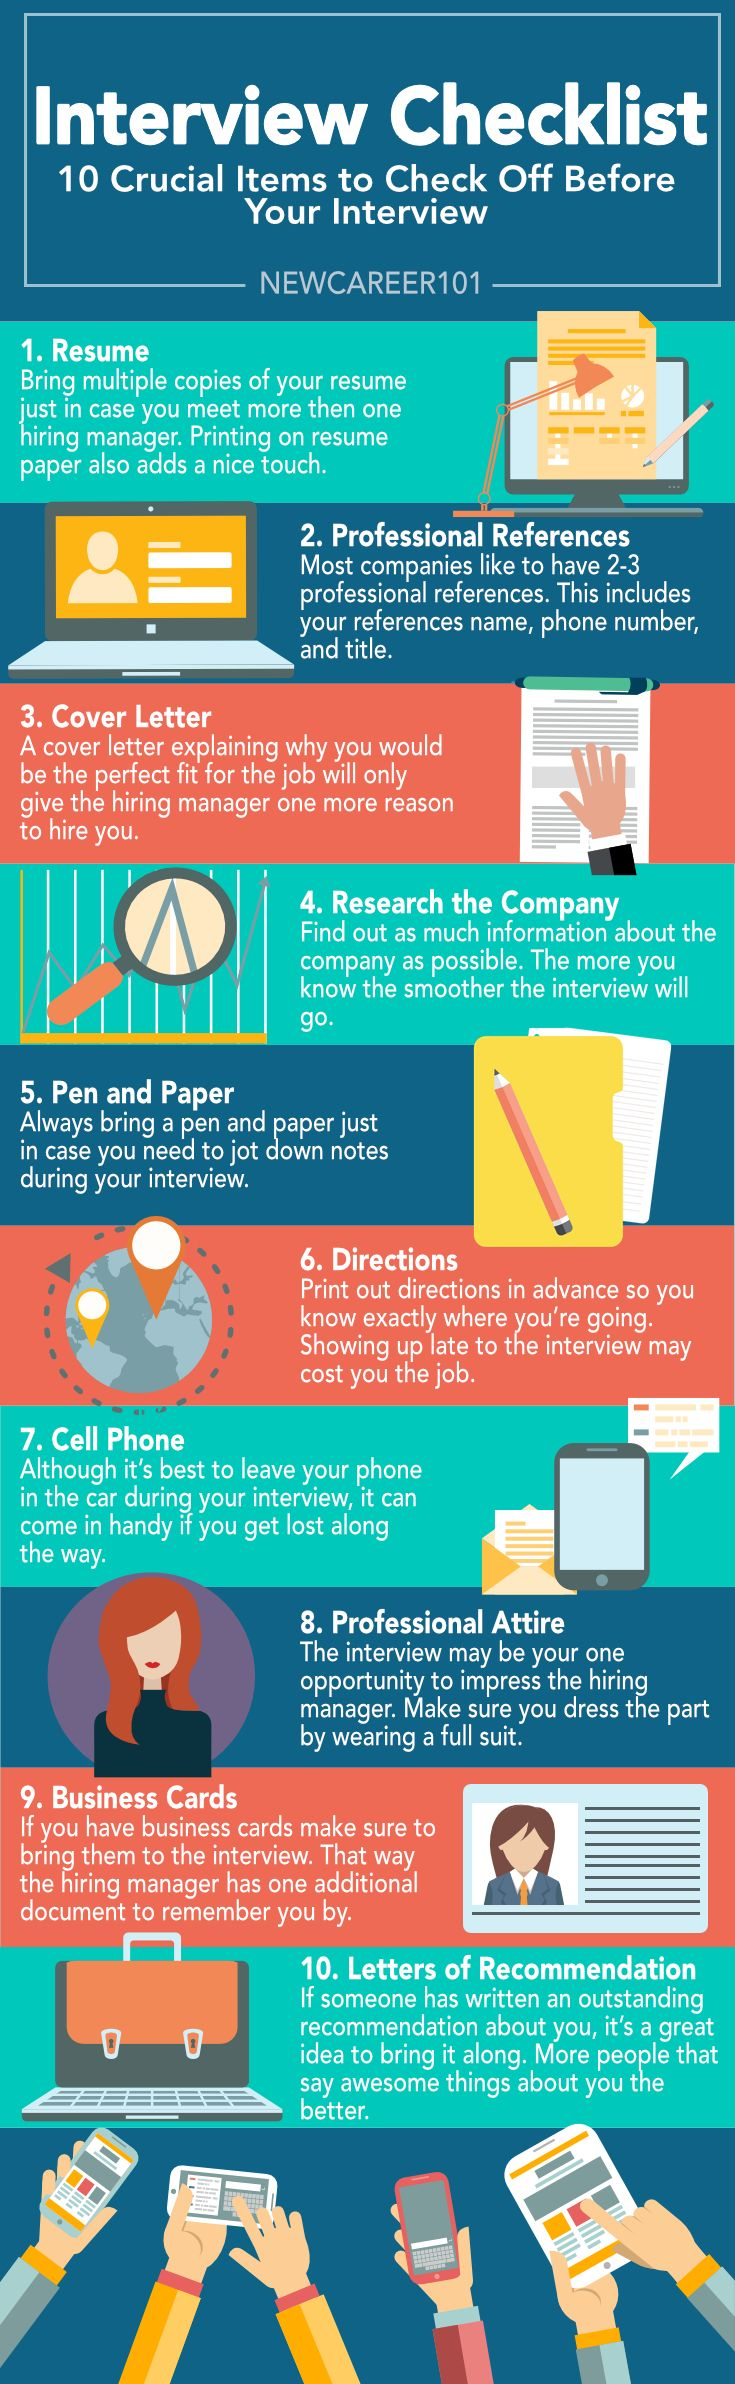 ● INTERVIEW CHECKLIST ● ______________________________ NewCareer101.com ⋙ An interview is a crucial part of the hiring process. This is your chance to show the hiring manager why you're the perfect fit for the job. Make sure you spend enough time preparing for the interview. That way you can be confident you checked everything off your list.